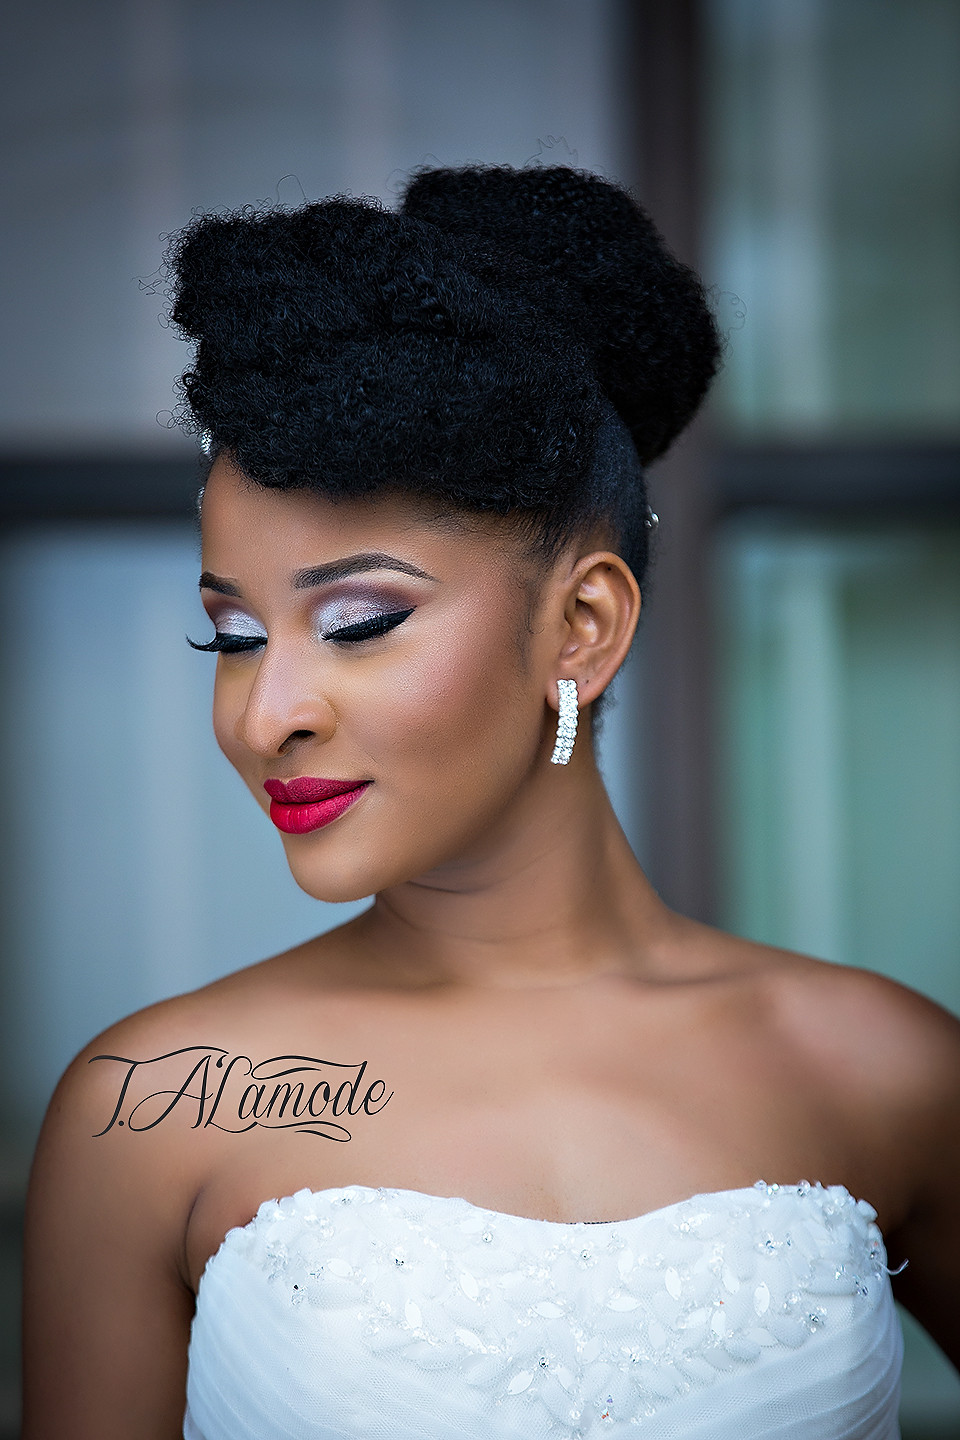 Best ideas about Natural Hairstyles For Weddings Black . Save or Pin Striking Natural Hair Looks for the 2015 Bride T Alamode Now.